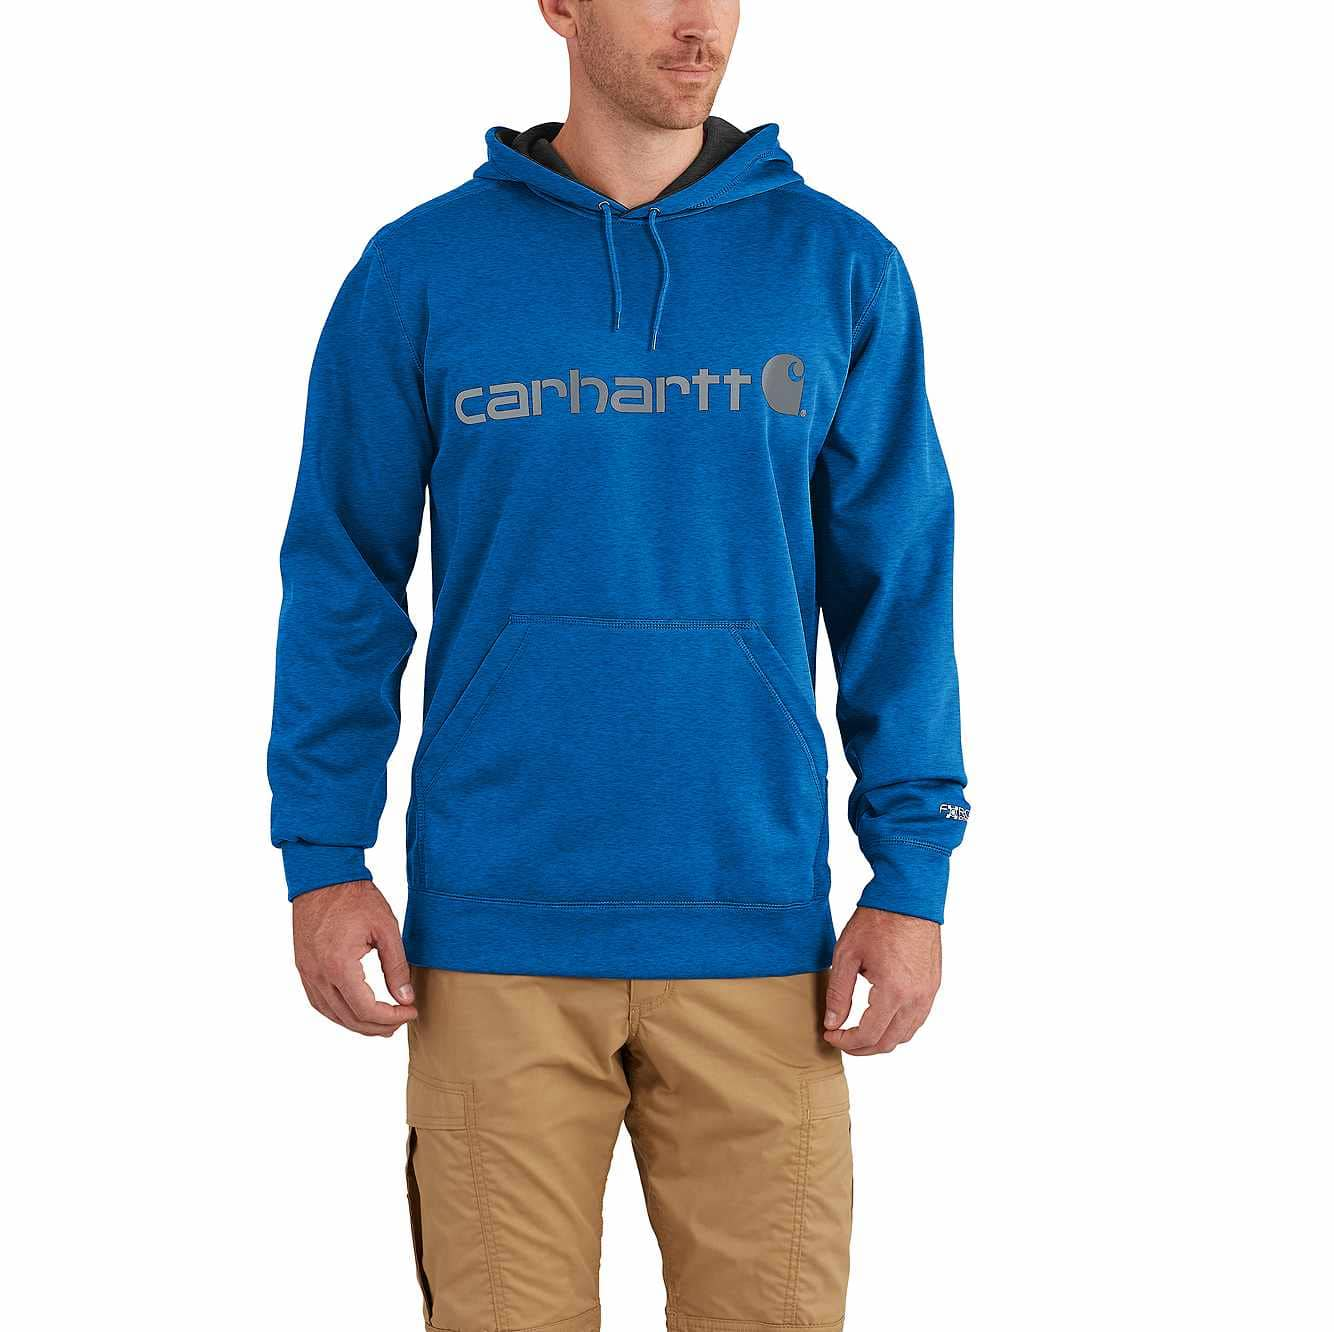 Medium NWT Carhartt Men/'s Force Extremes Signature Graphic Hooded Sweatshirt